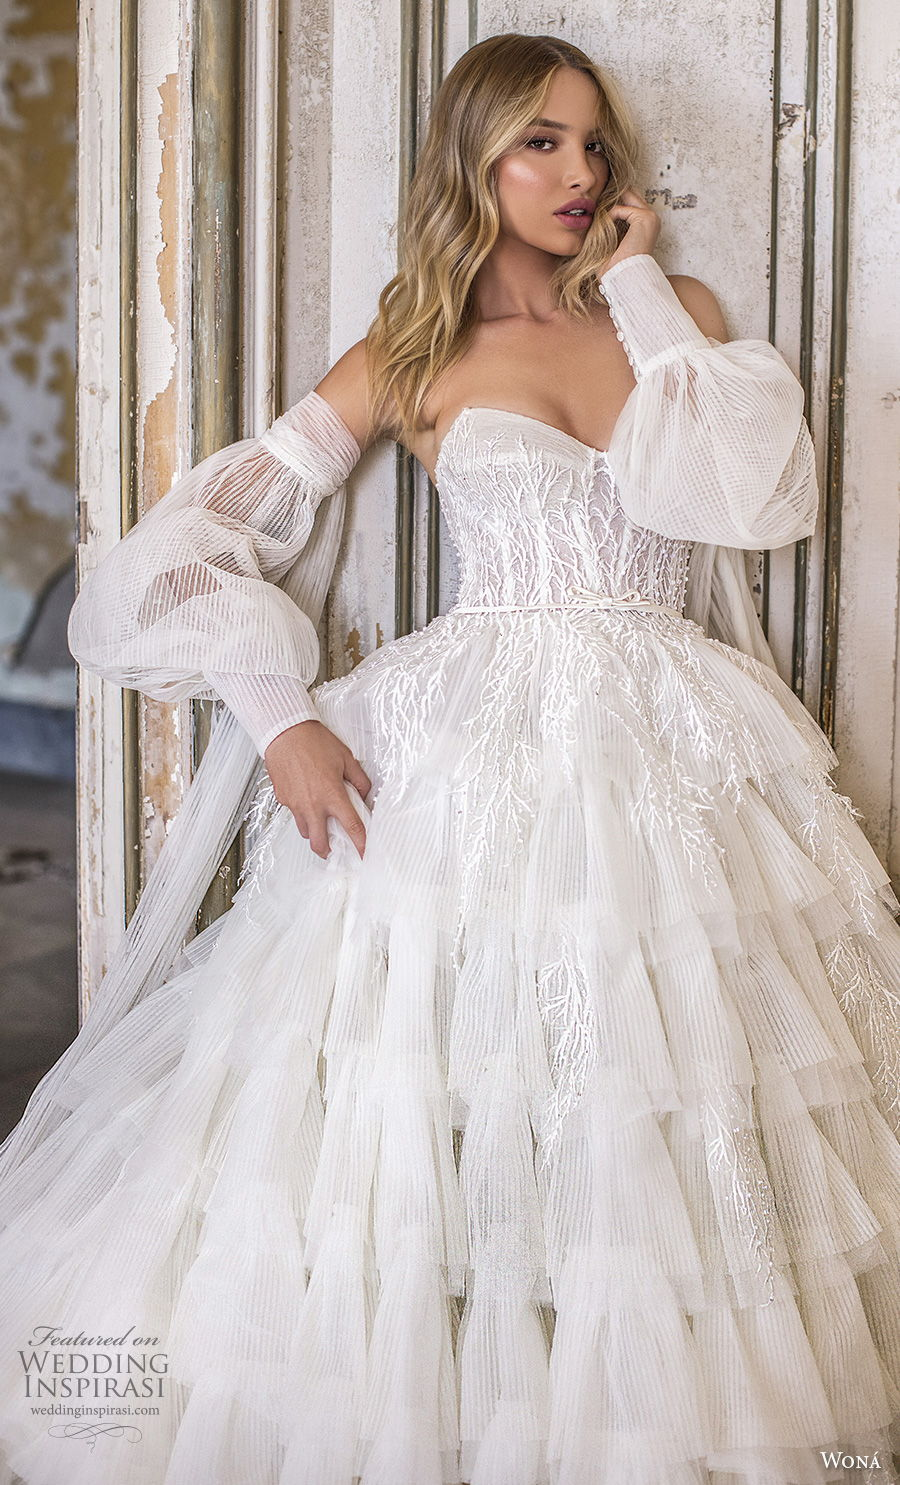 wona 2020 couture bridal long bishop sleeves off the shoulder sweetheart neckline heavily embellished bodice tiered skirt ball gown a  line wedding dress mid back royal train (14) zv